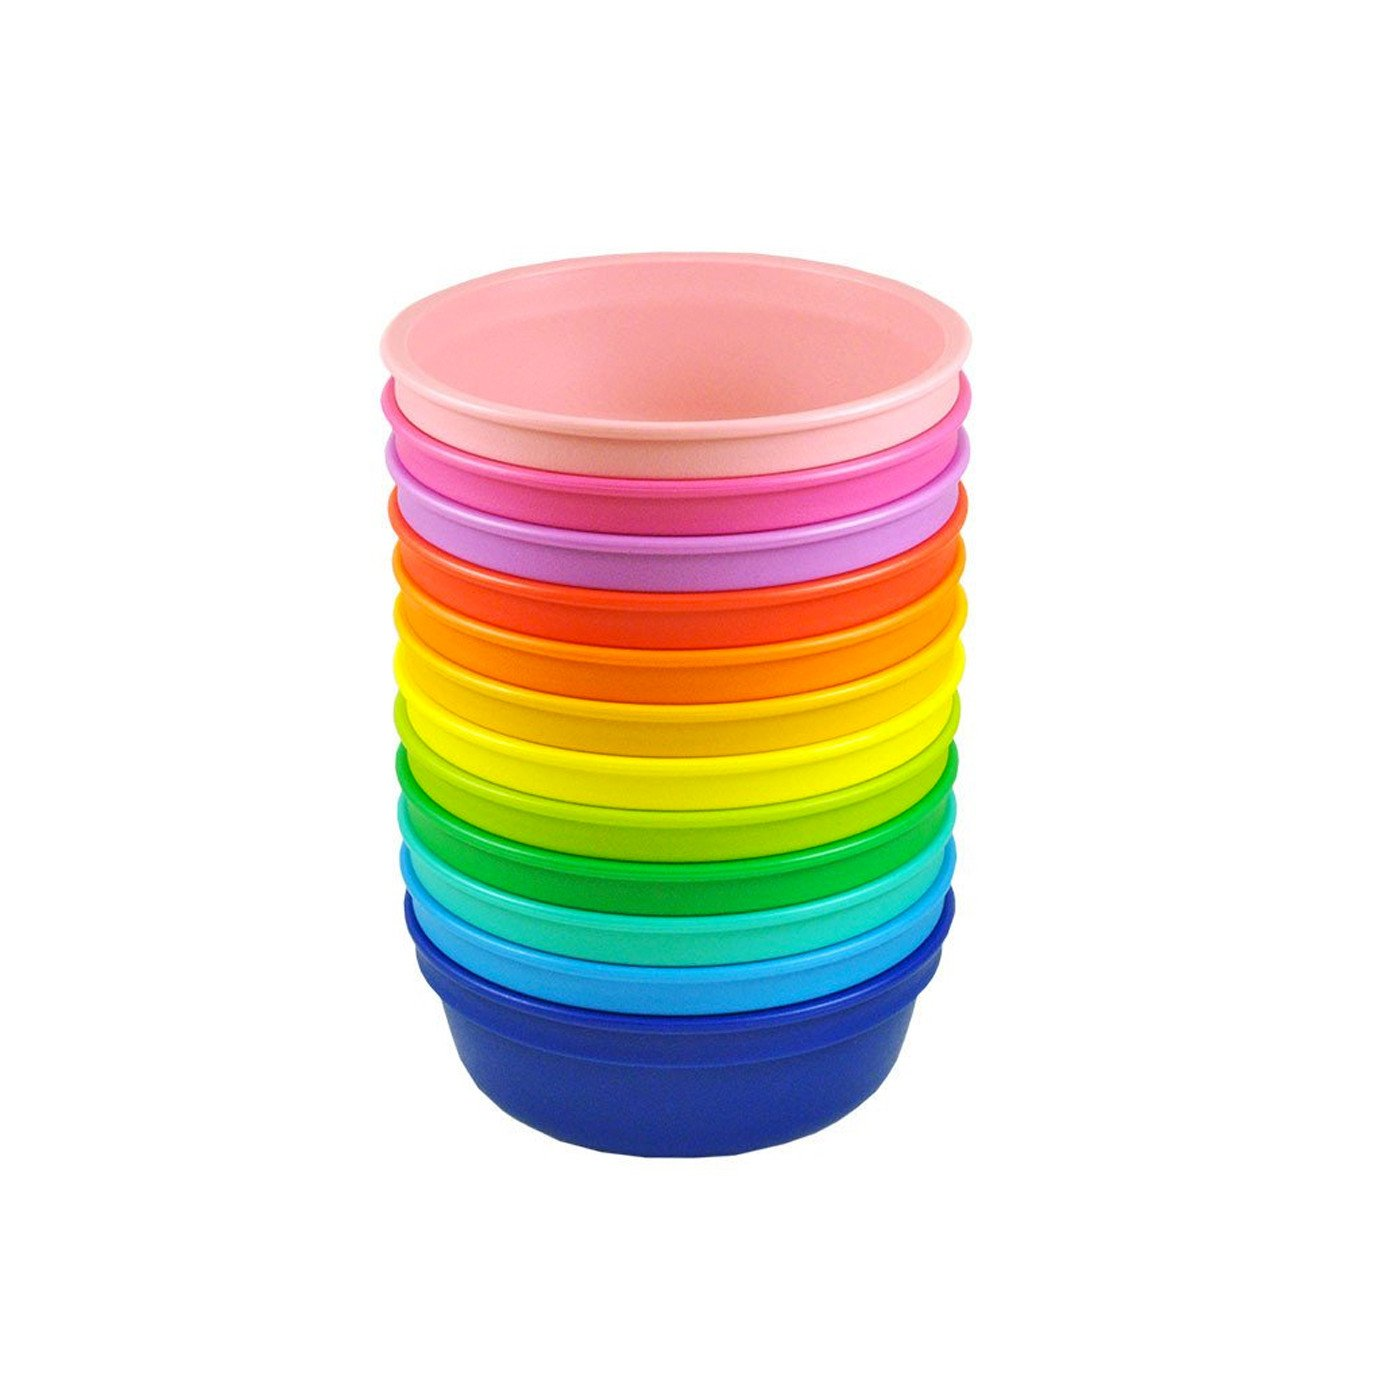 Replay 12 Piece Sets Rainbow Replay Dinnerware Bowl at Little Earth Nest Eco Shop